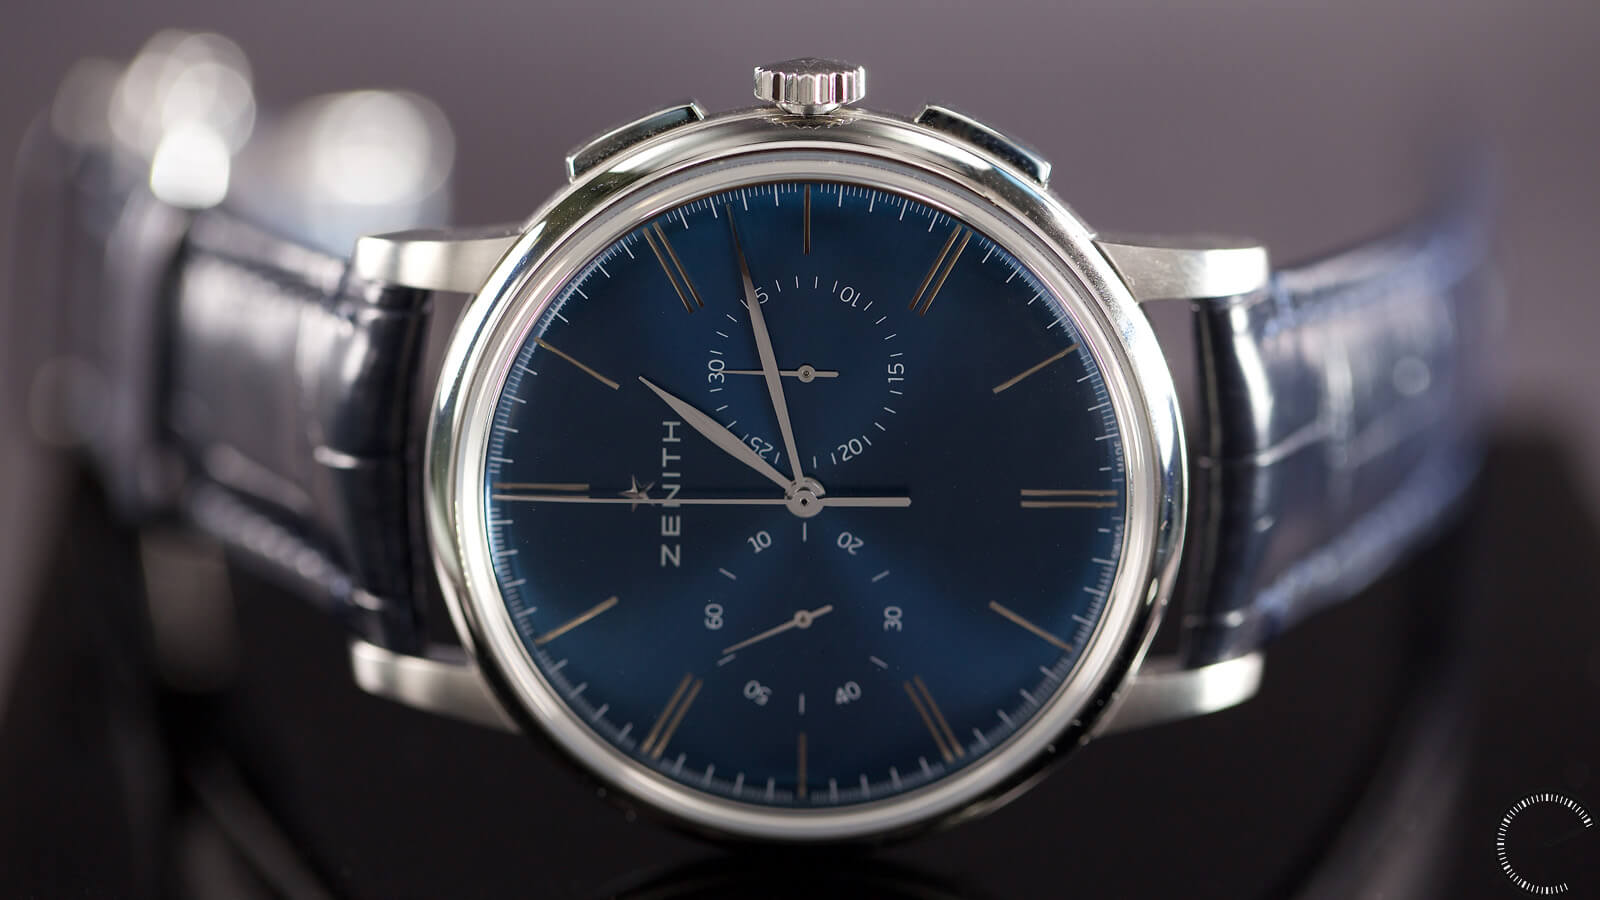 Image of Zenith Elite Chronograph featuring El_Primero 4069 movement